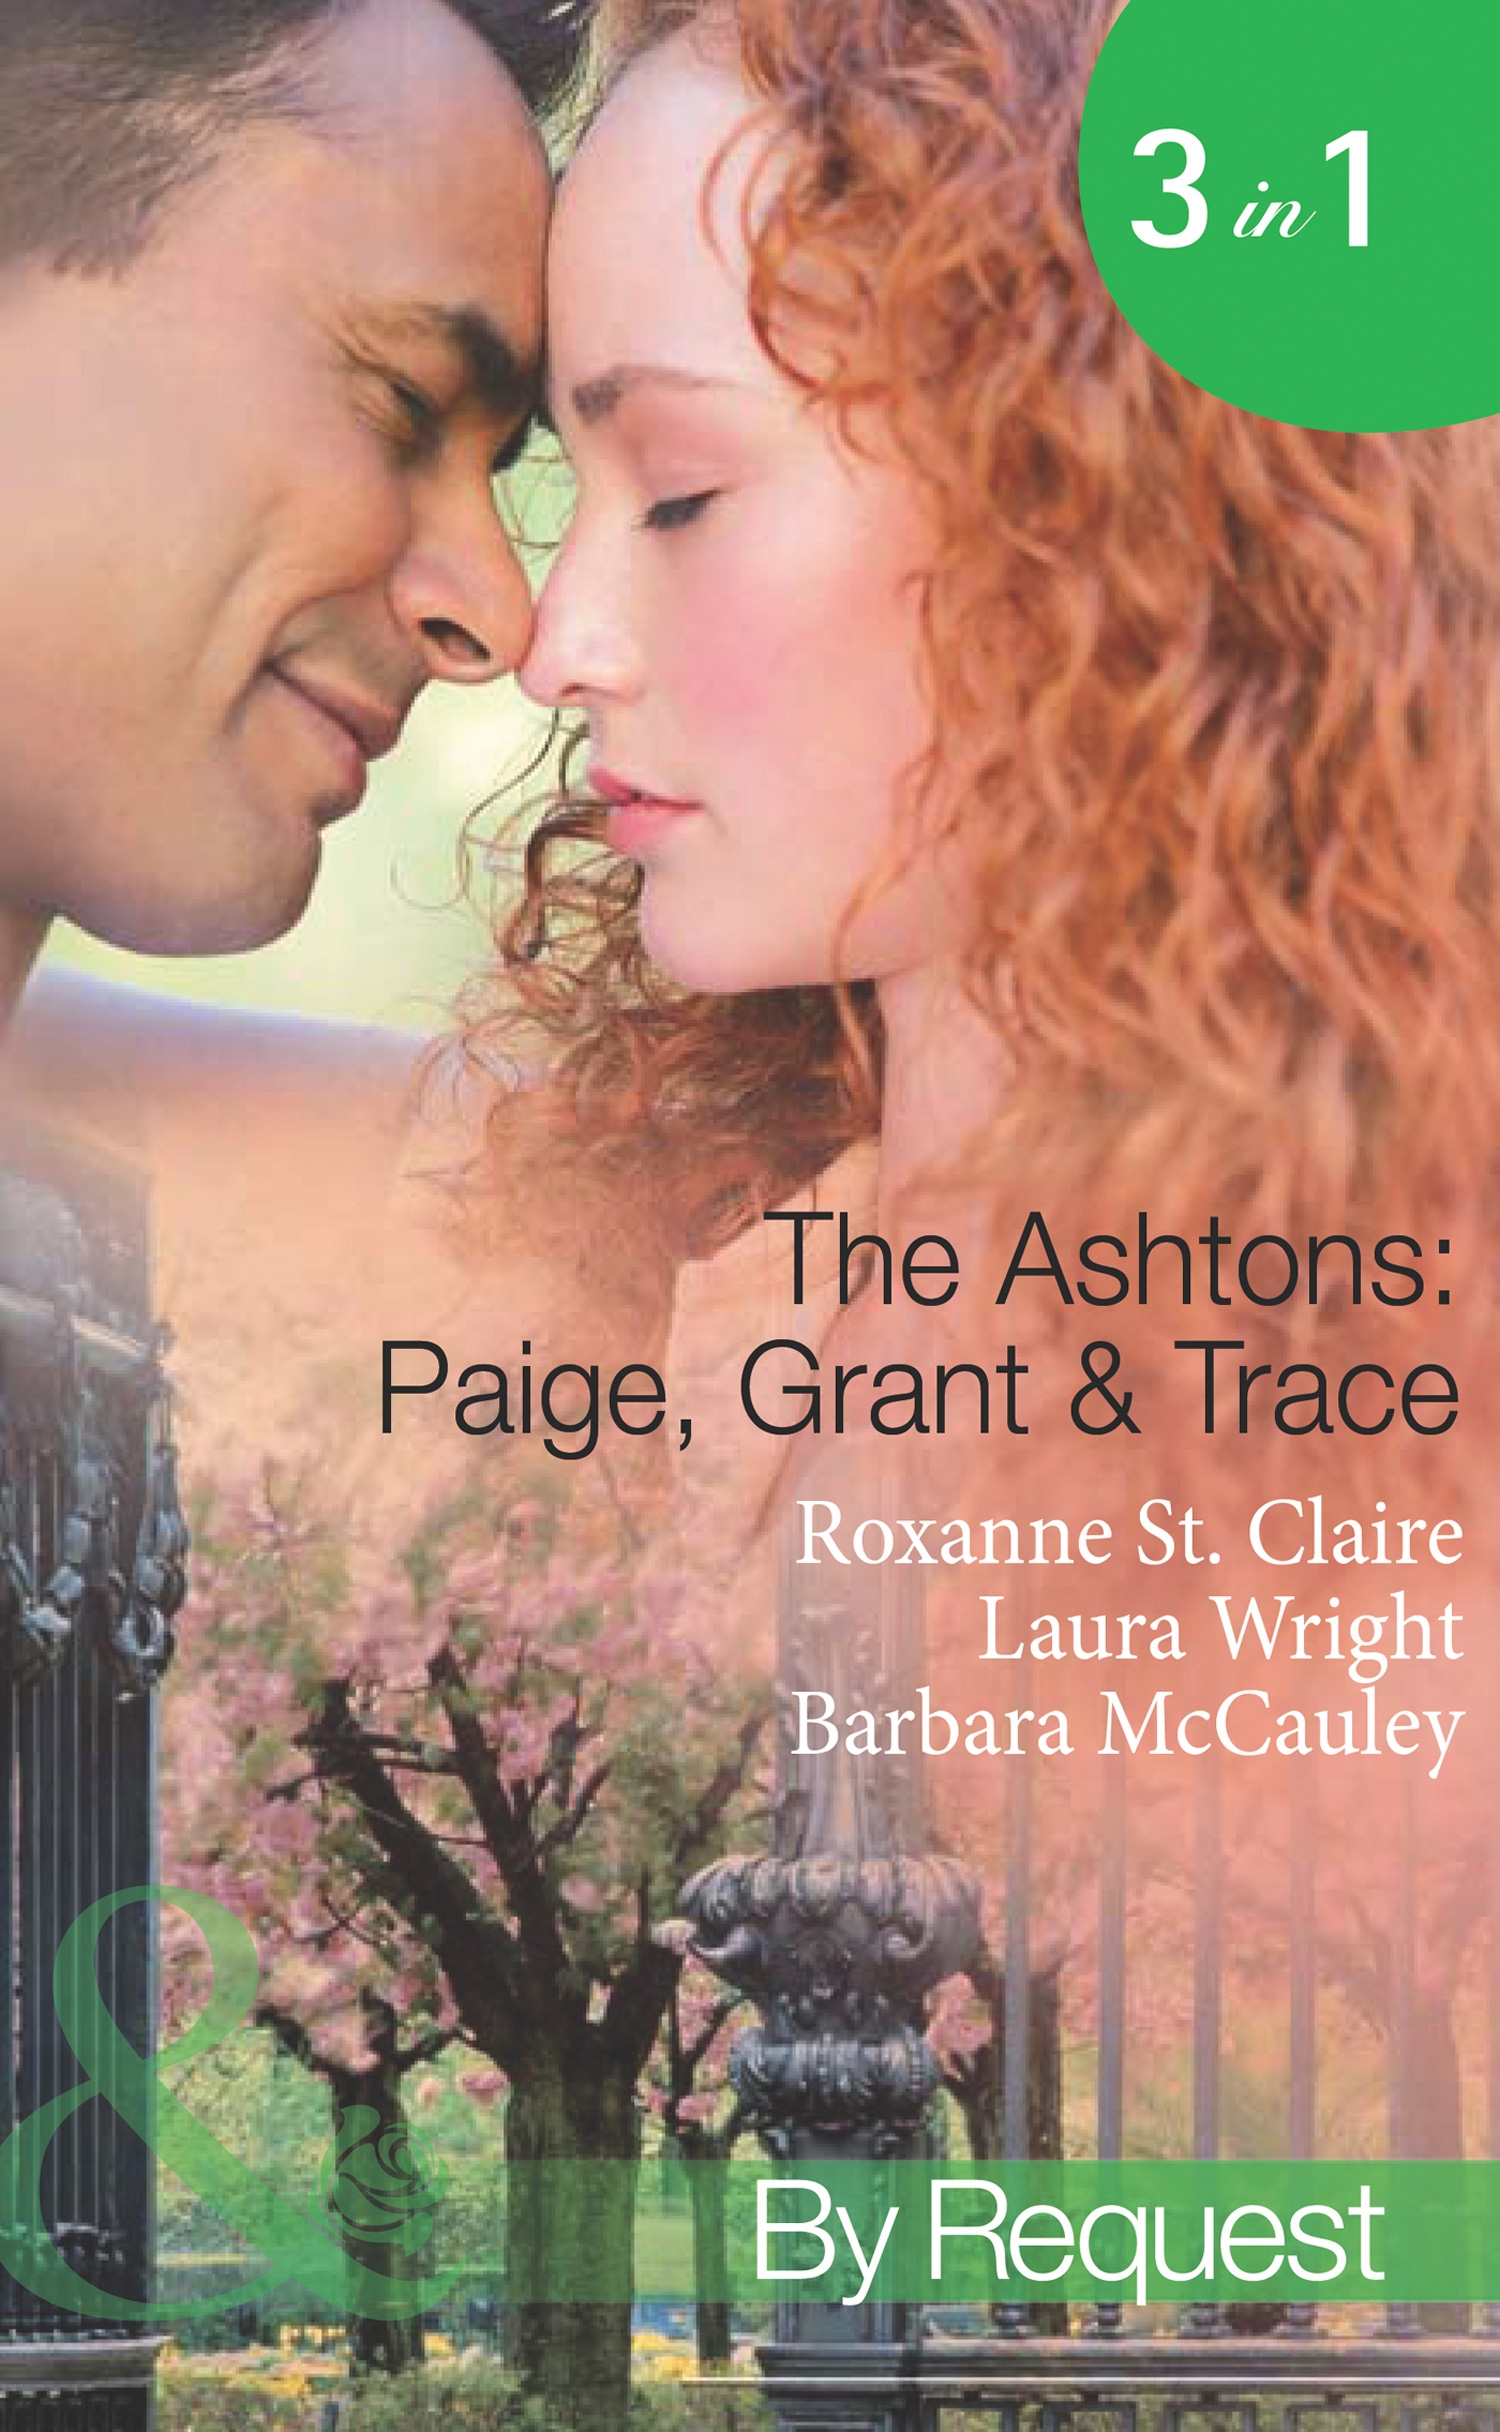 The Ashtons: Paige, Grant & Trace